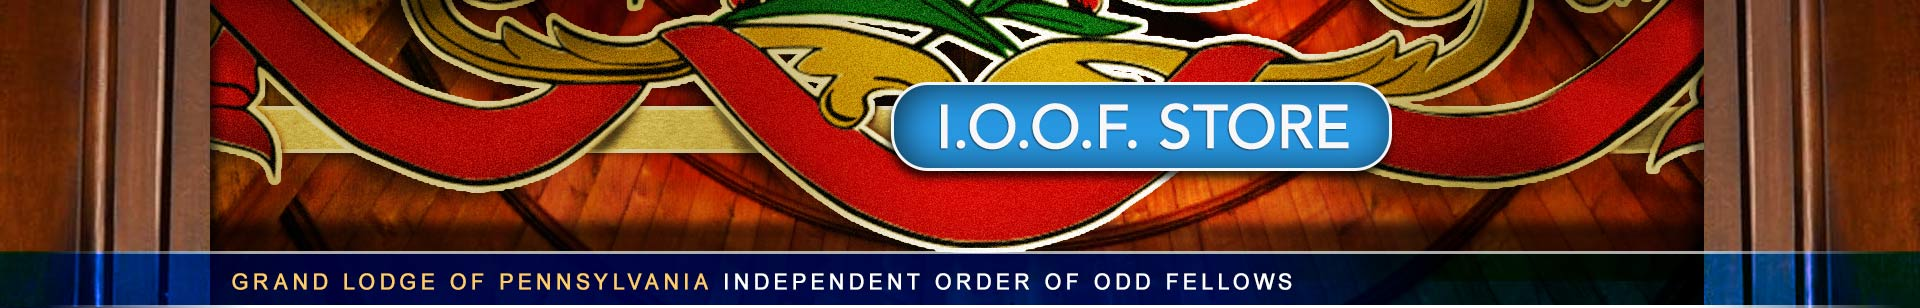 Welcome to the Grand Lodge Of Pennsylvania Independent Order Of Odd Fellows Online Shop!